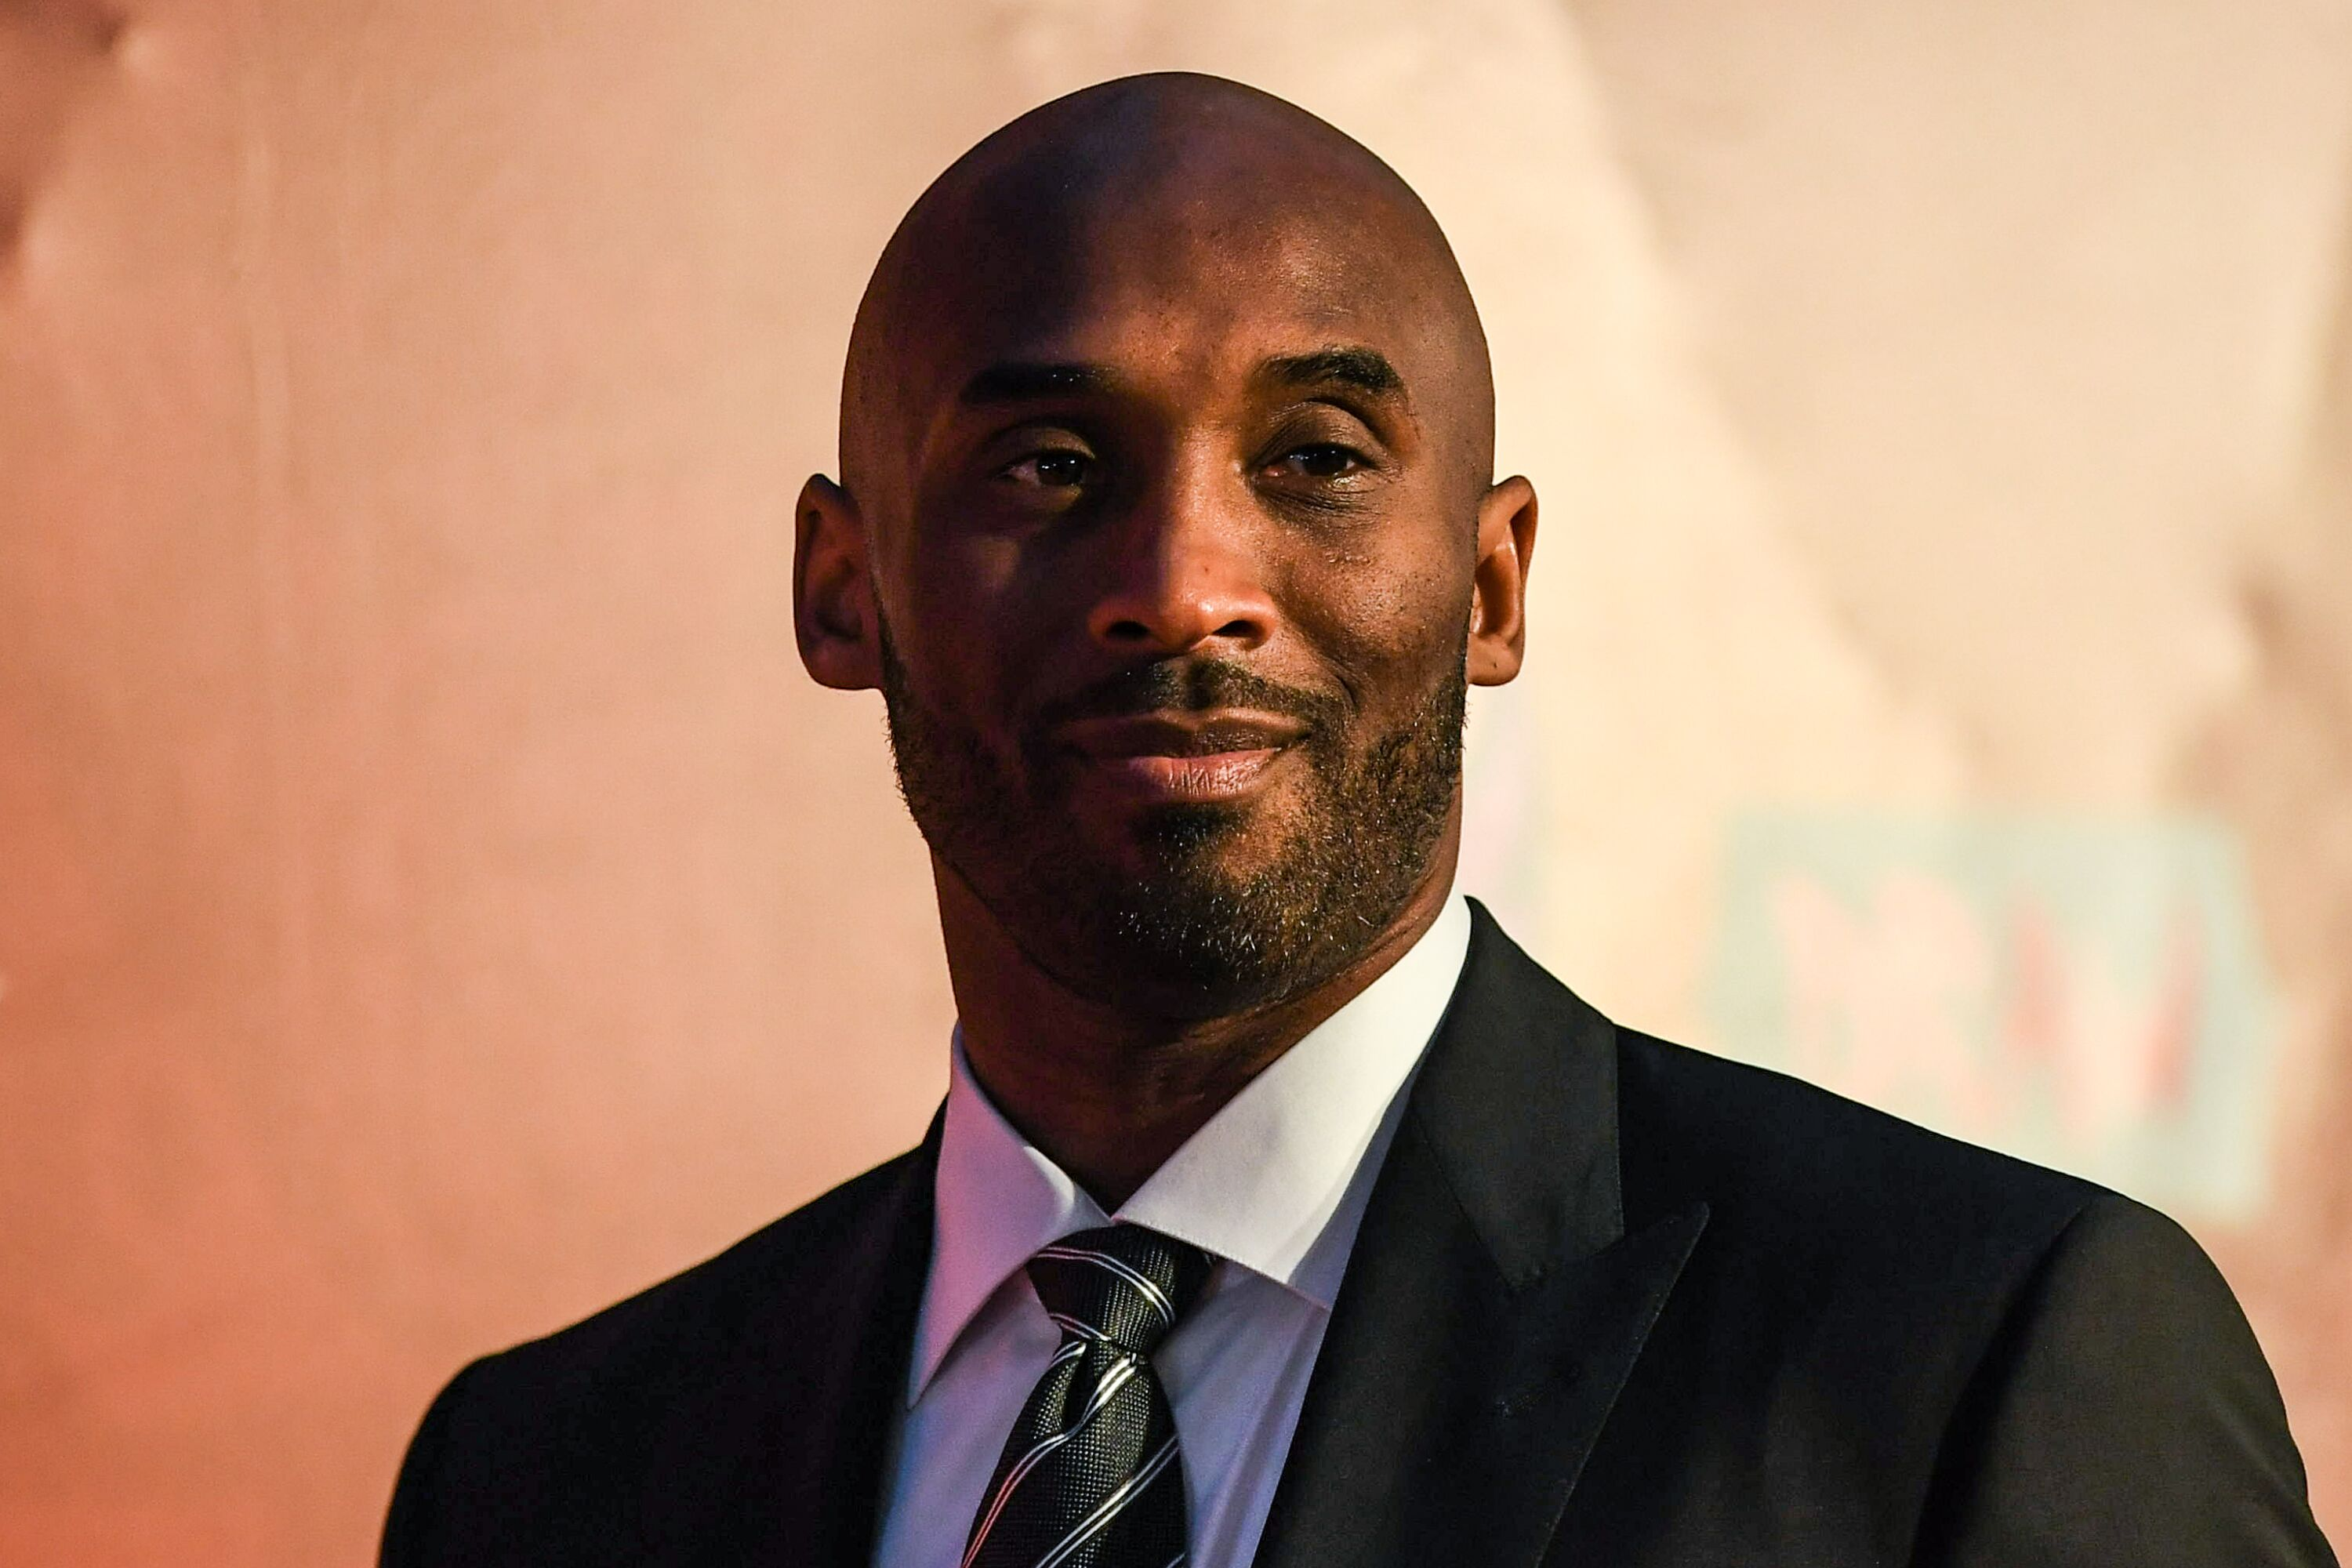 Kobe Bryant during the FIBA Basketball World Cup 2019 Draw Ceremony on March 16, 2019 in Shenzhen, China. | Getty Images